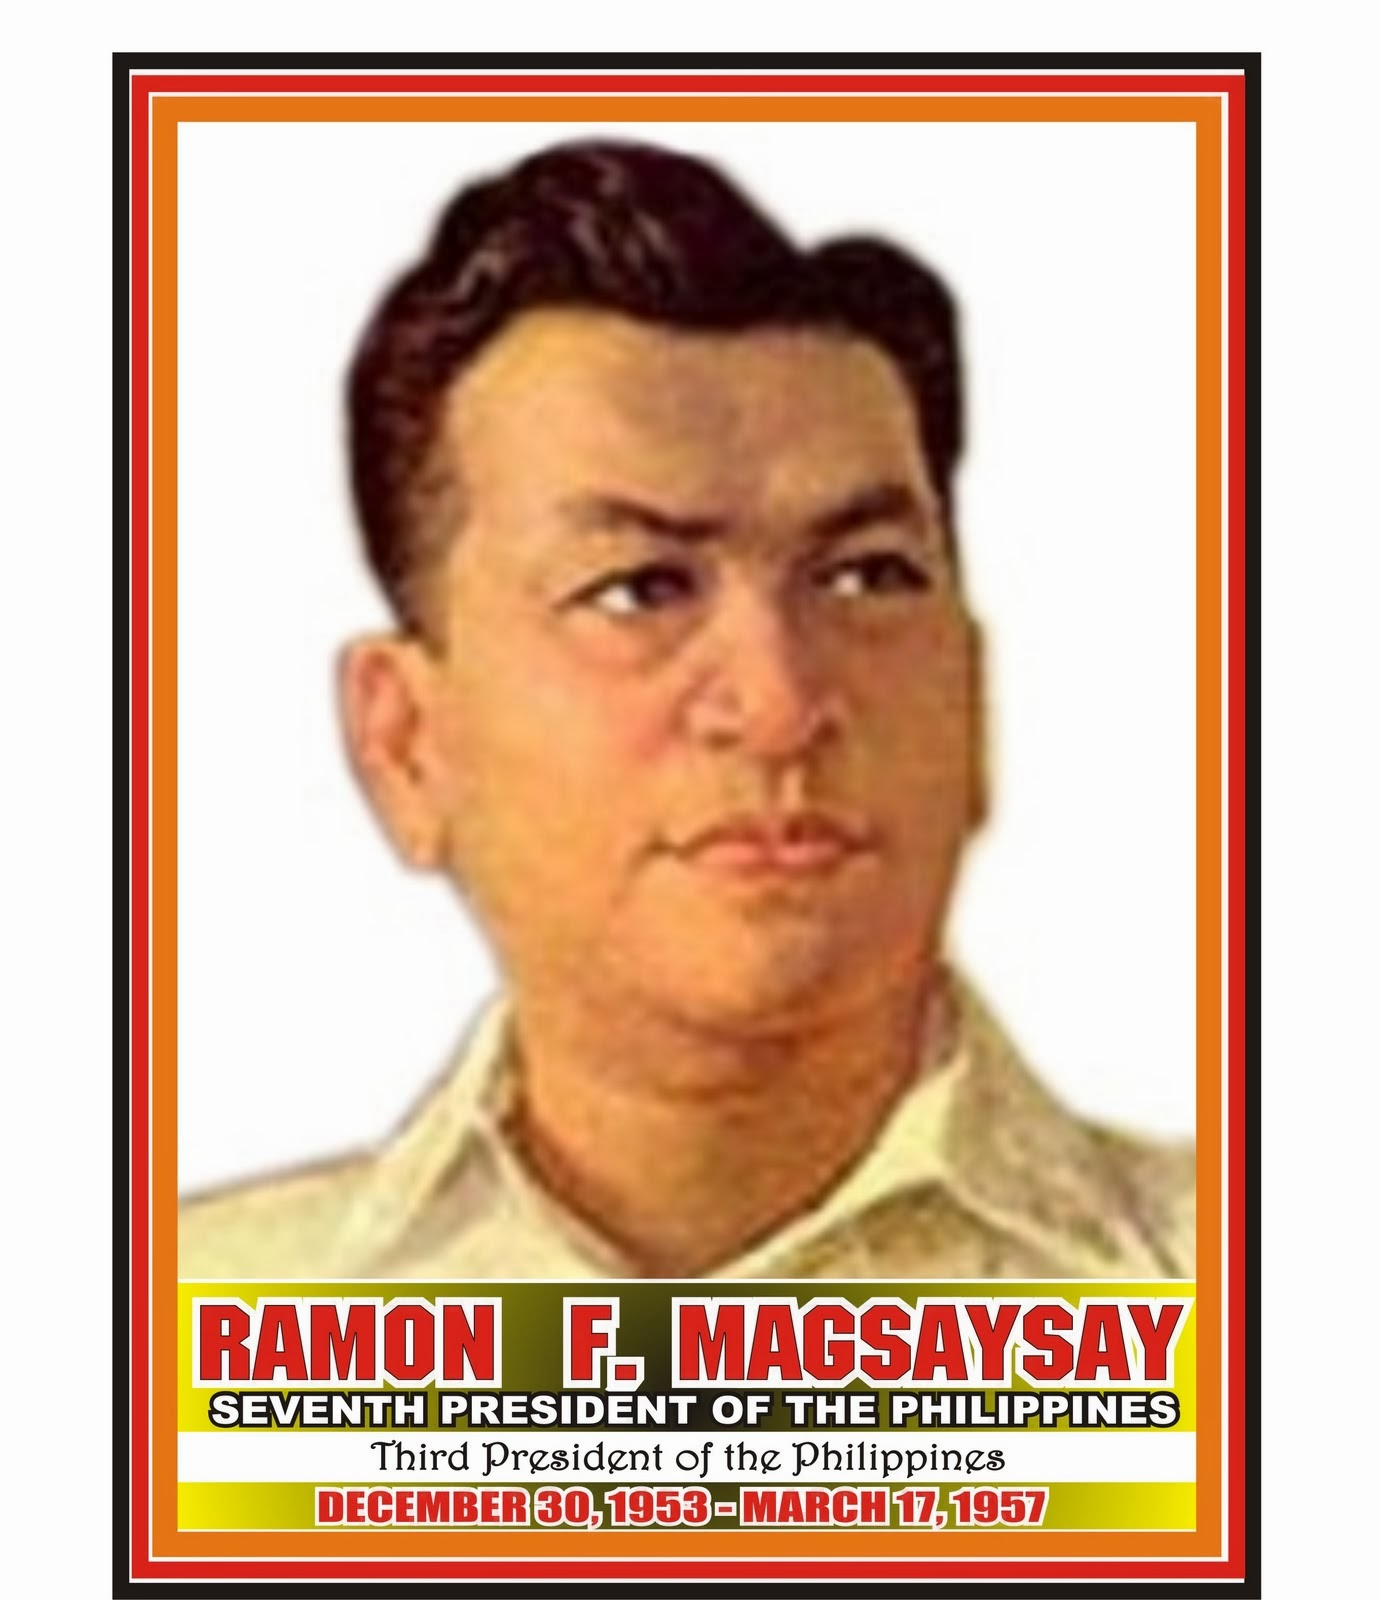 major achievements of philippine president ramon magsaysay A complex achievement » the philippine revolution thus began, and its main preoccupation was primarily inward: that is, while independence from spain was being fought, the main concern it is said that president diosdado macapagal decided to transfer independence day from july 4 to june 12 in a fit of annoyance.